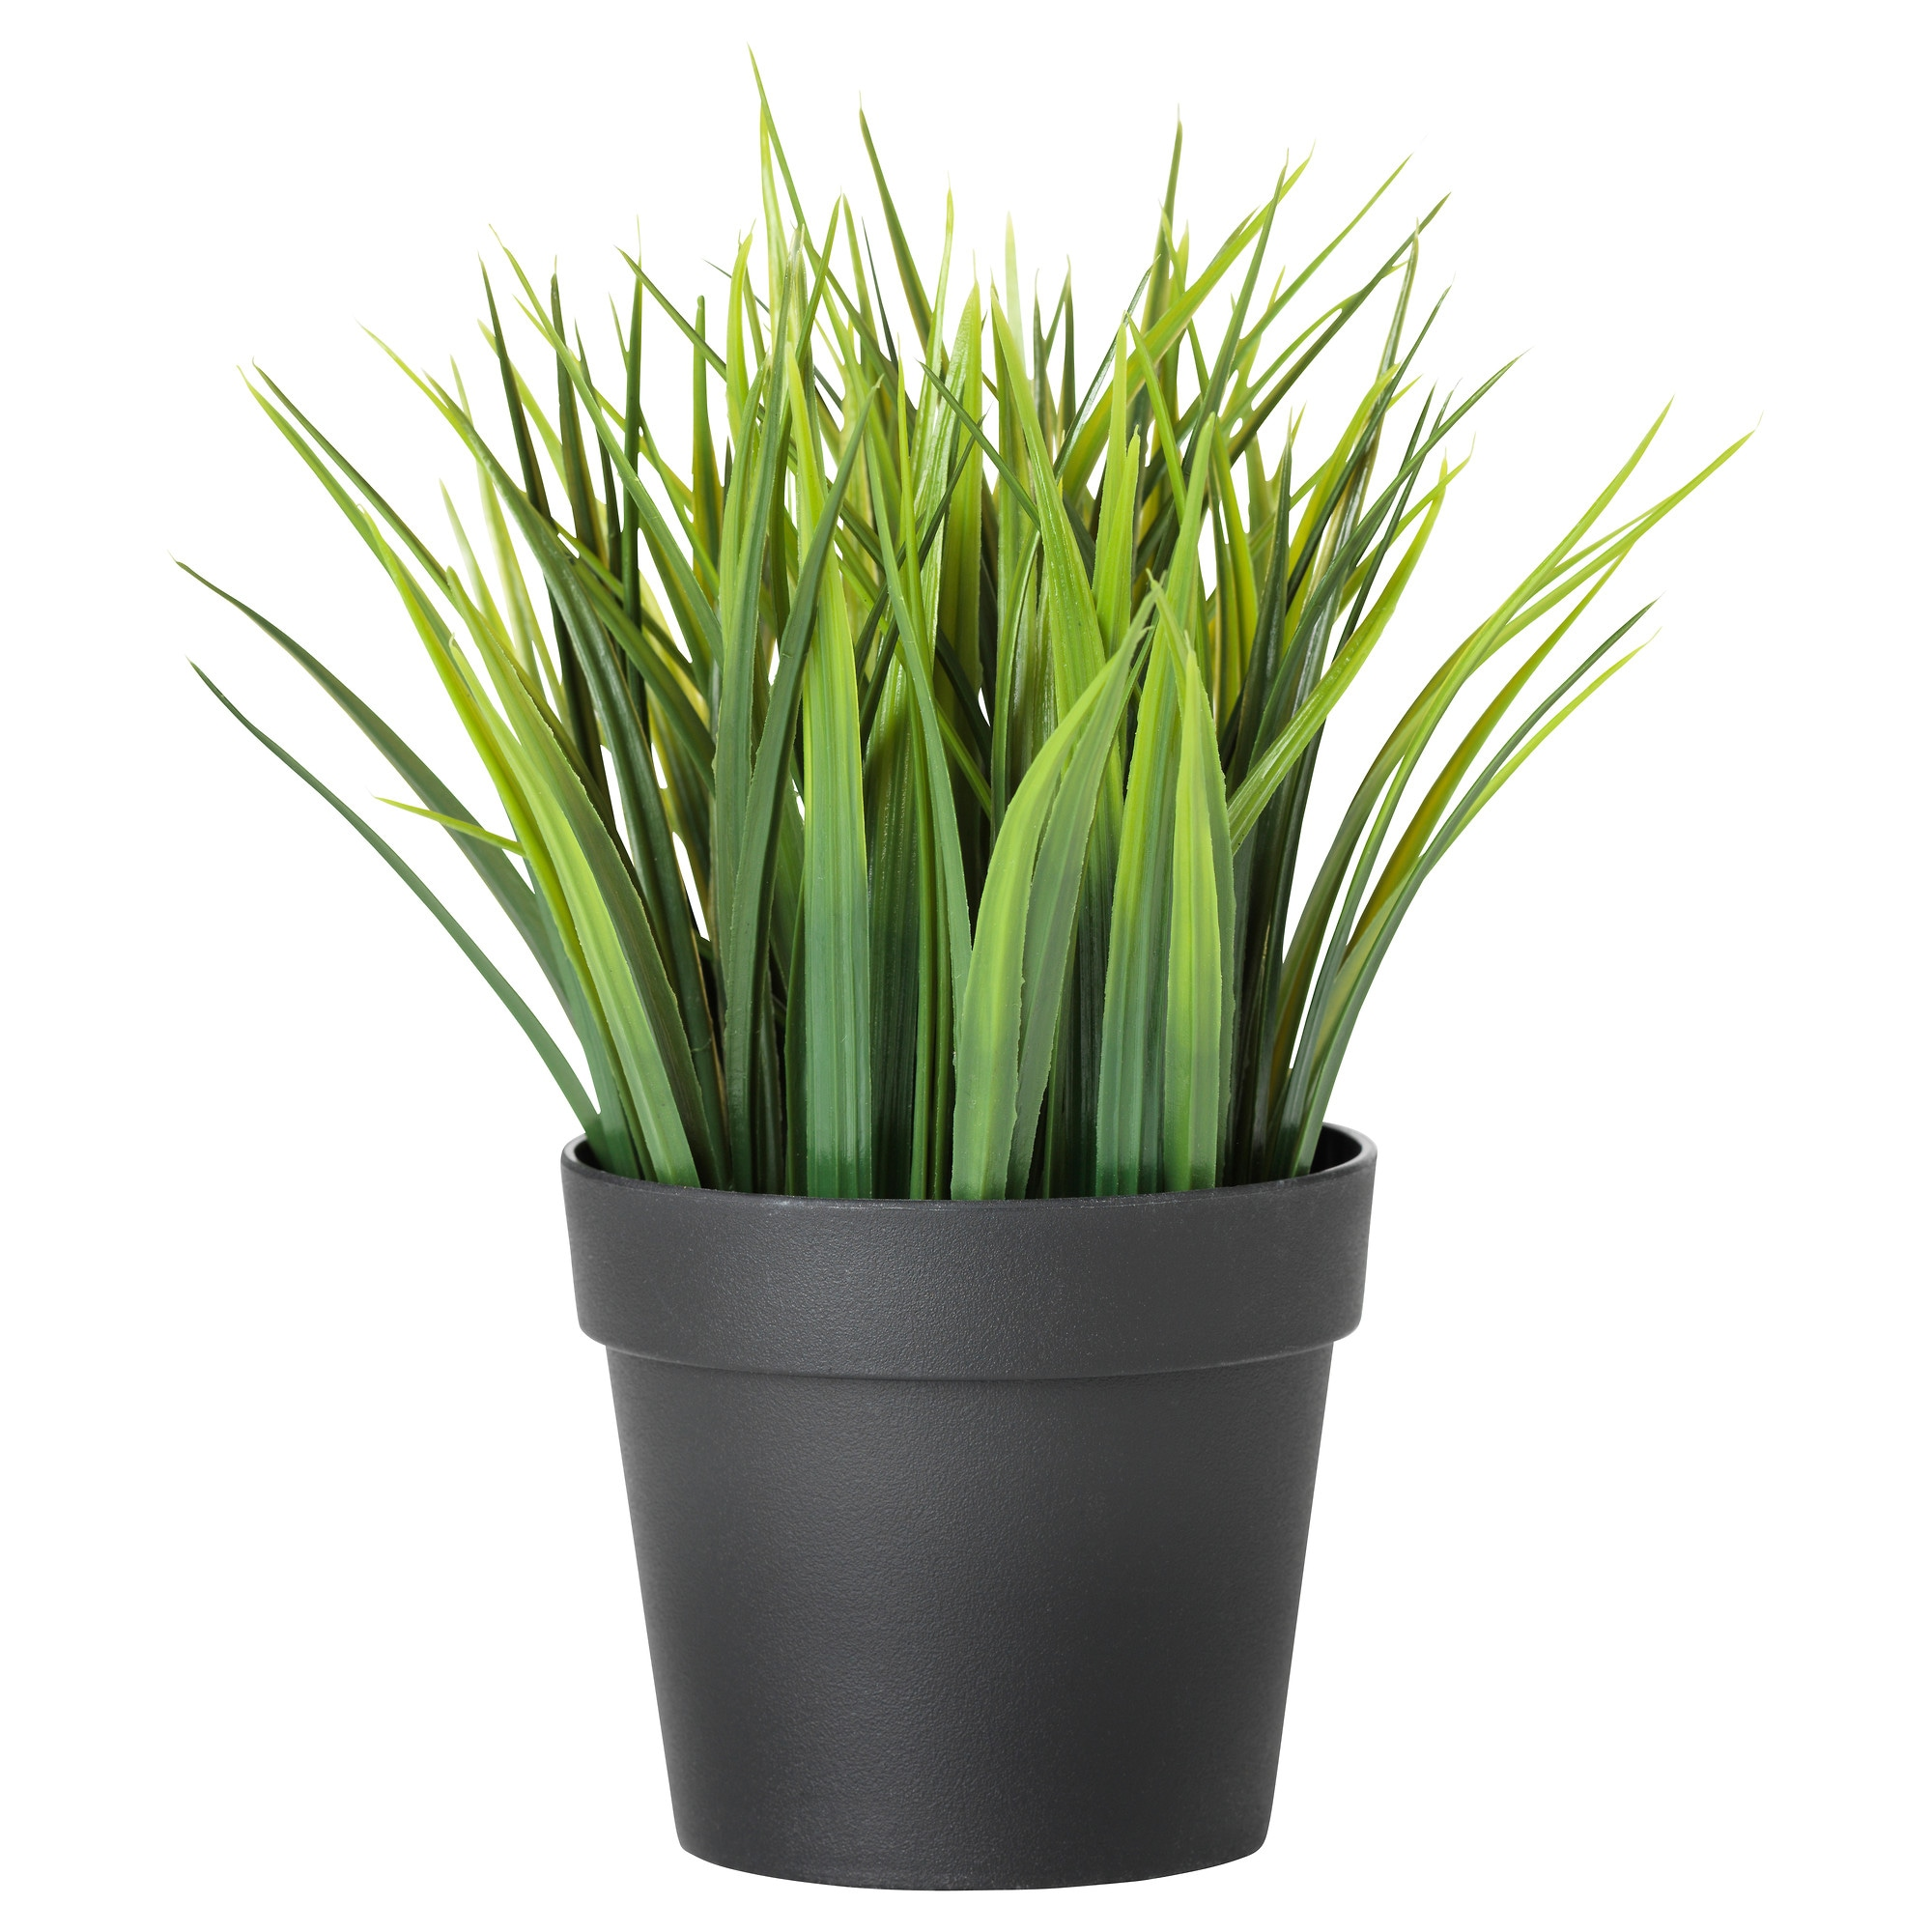 225 & Artificial potted plant FEJKA in/outdoor grass